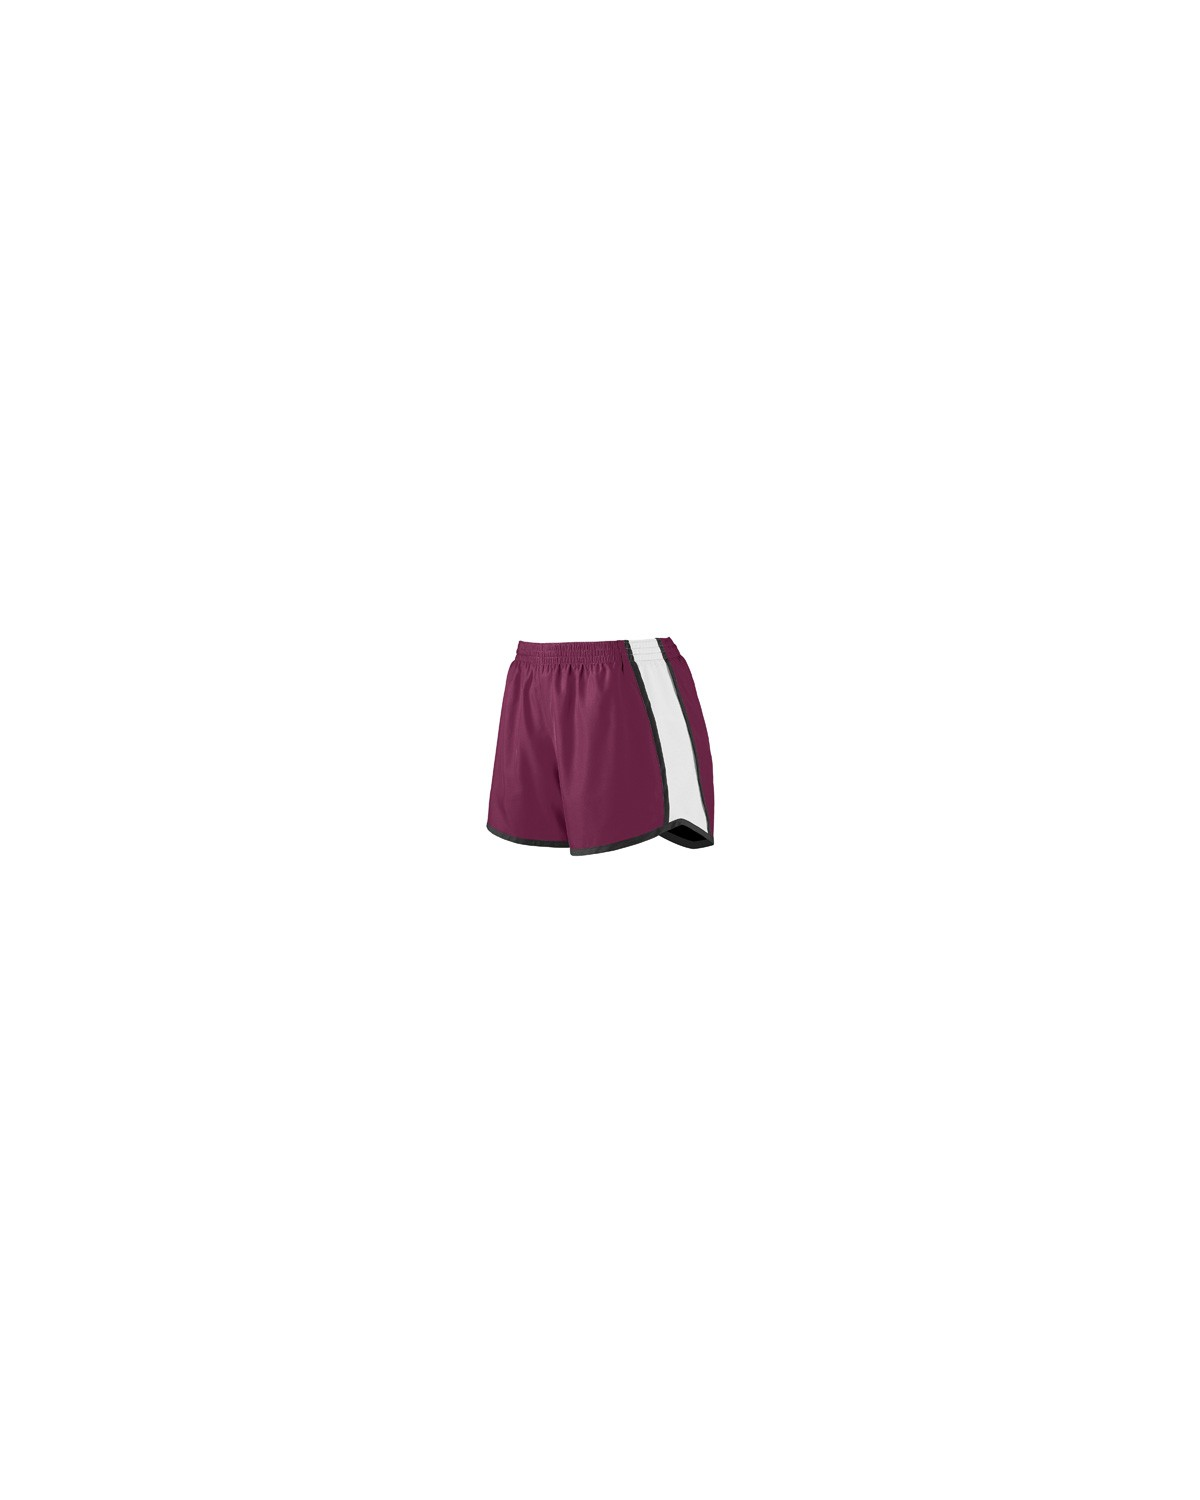 1266 Augusta Drop Ship MAROON/WHT/BLK